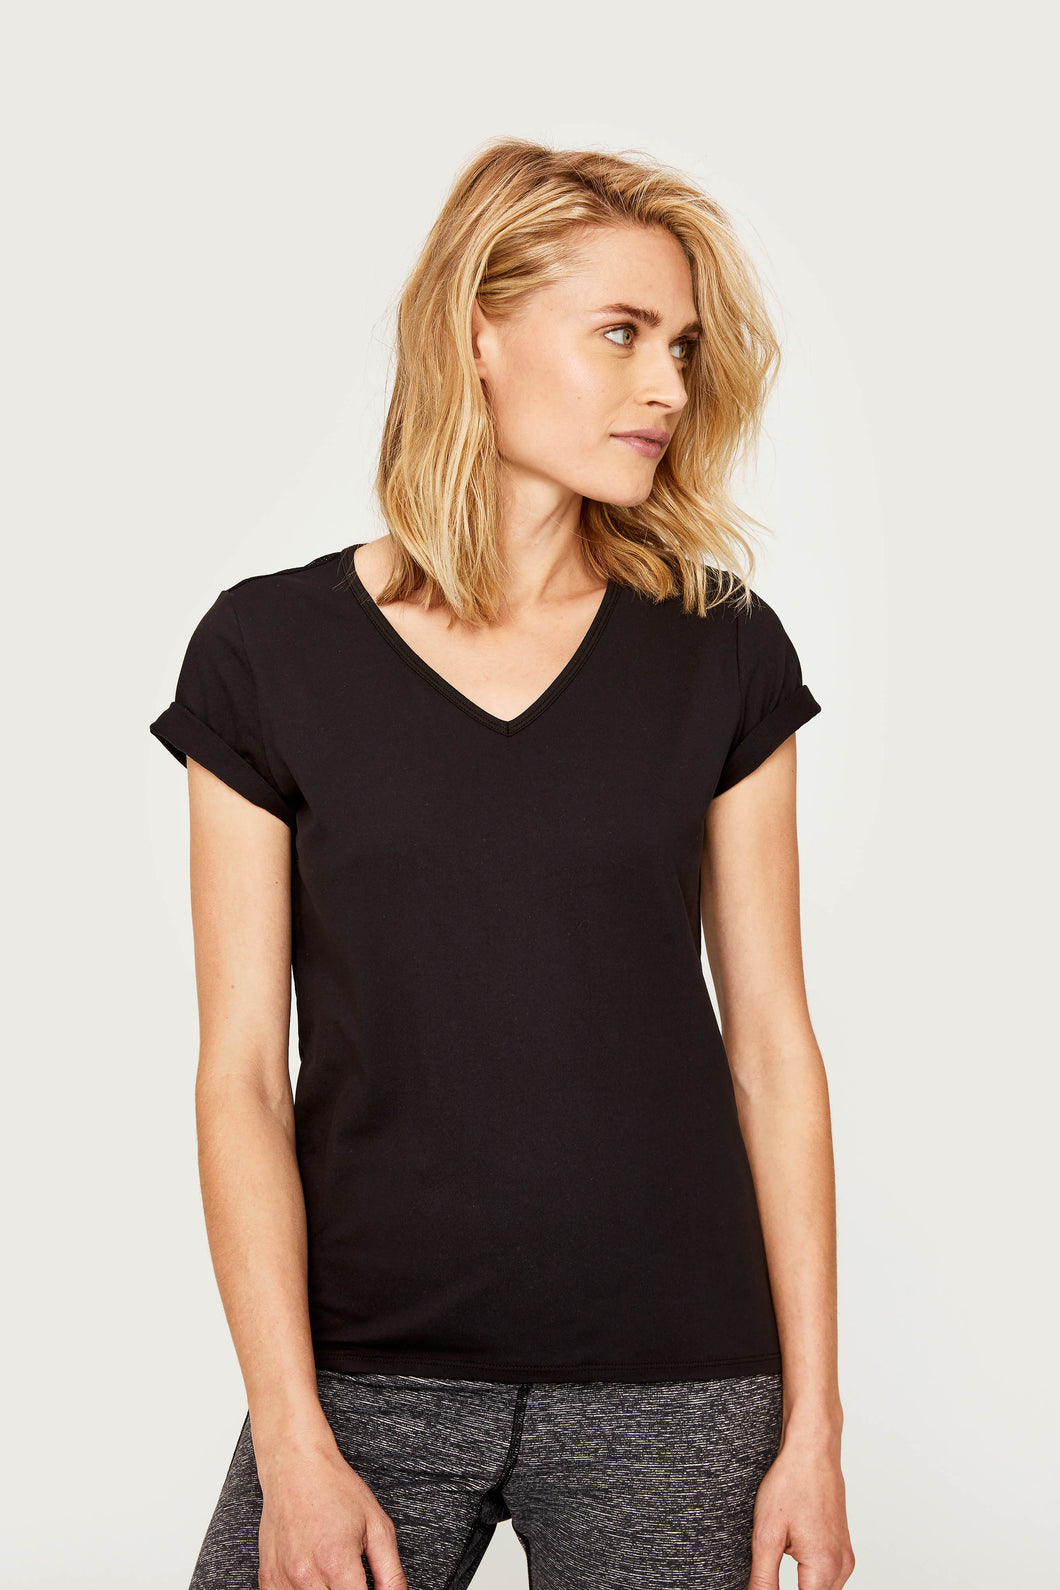 Lole V Neck Tee - Black with Mesh Back